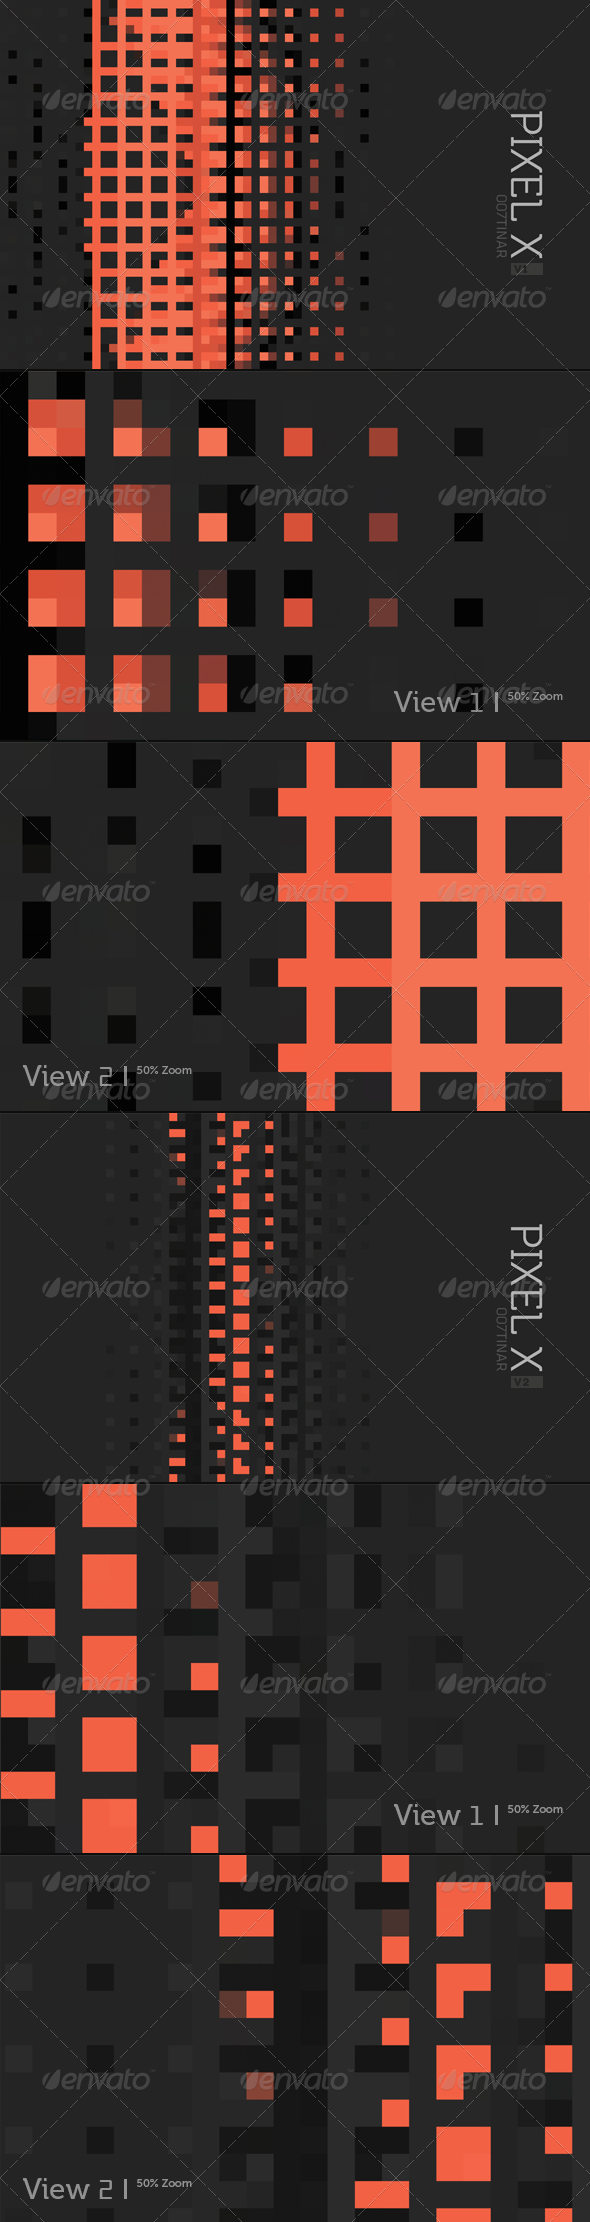 PIXEL X Background - Abstract Backgrounds